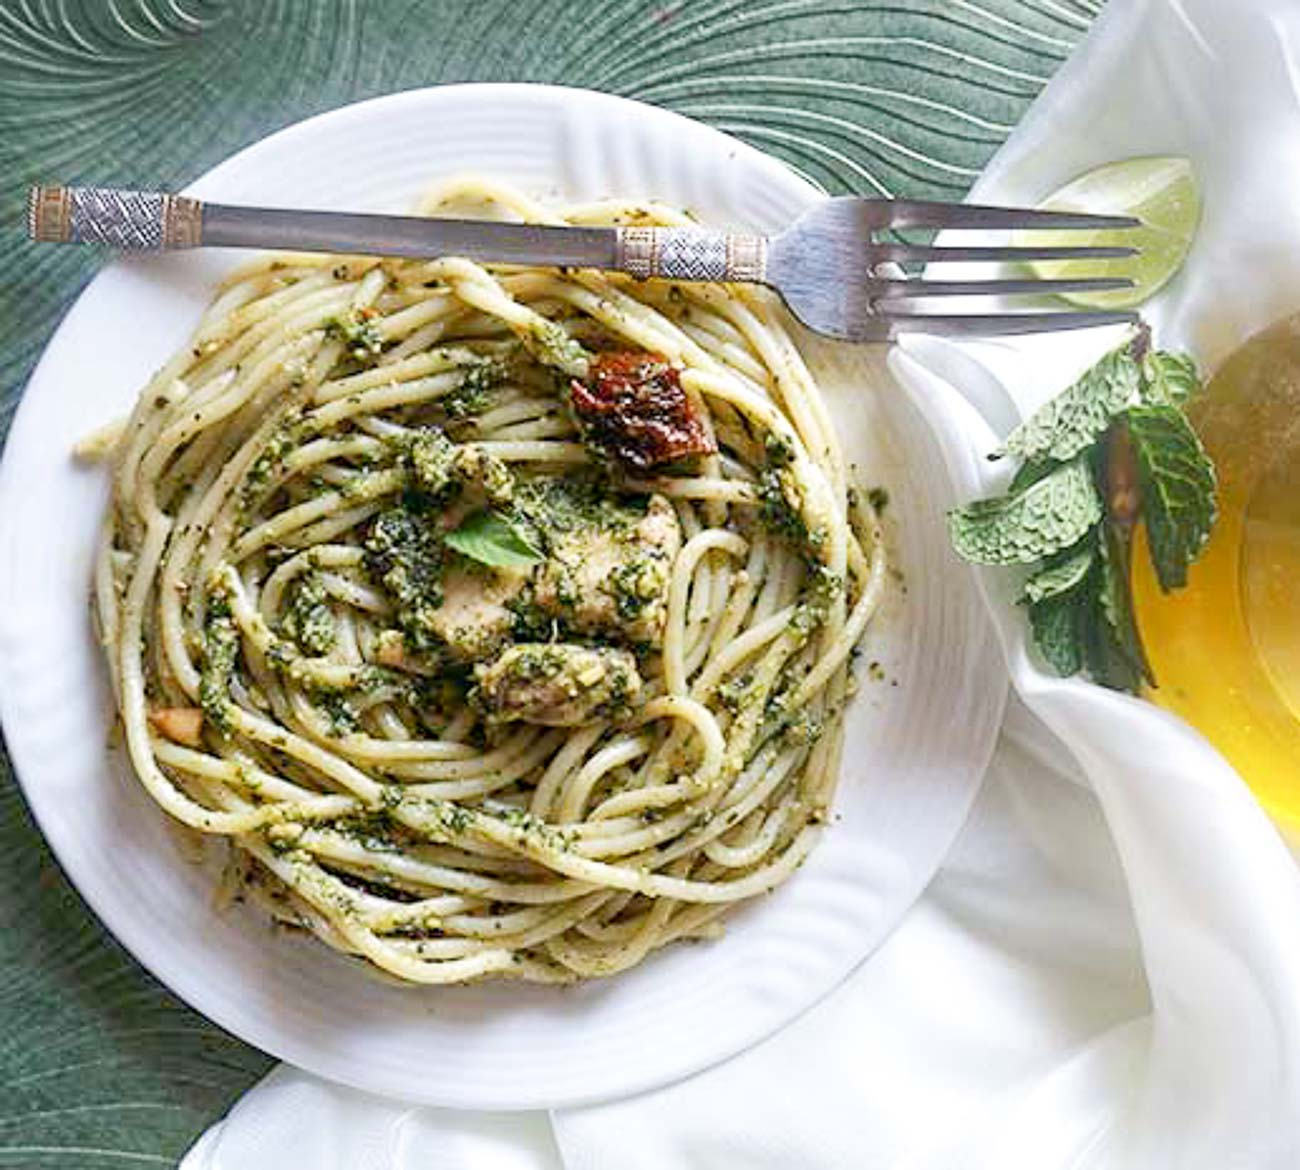 How to make a creamy pesto pasta sauce